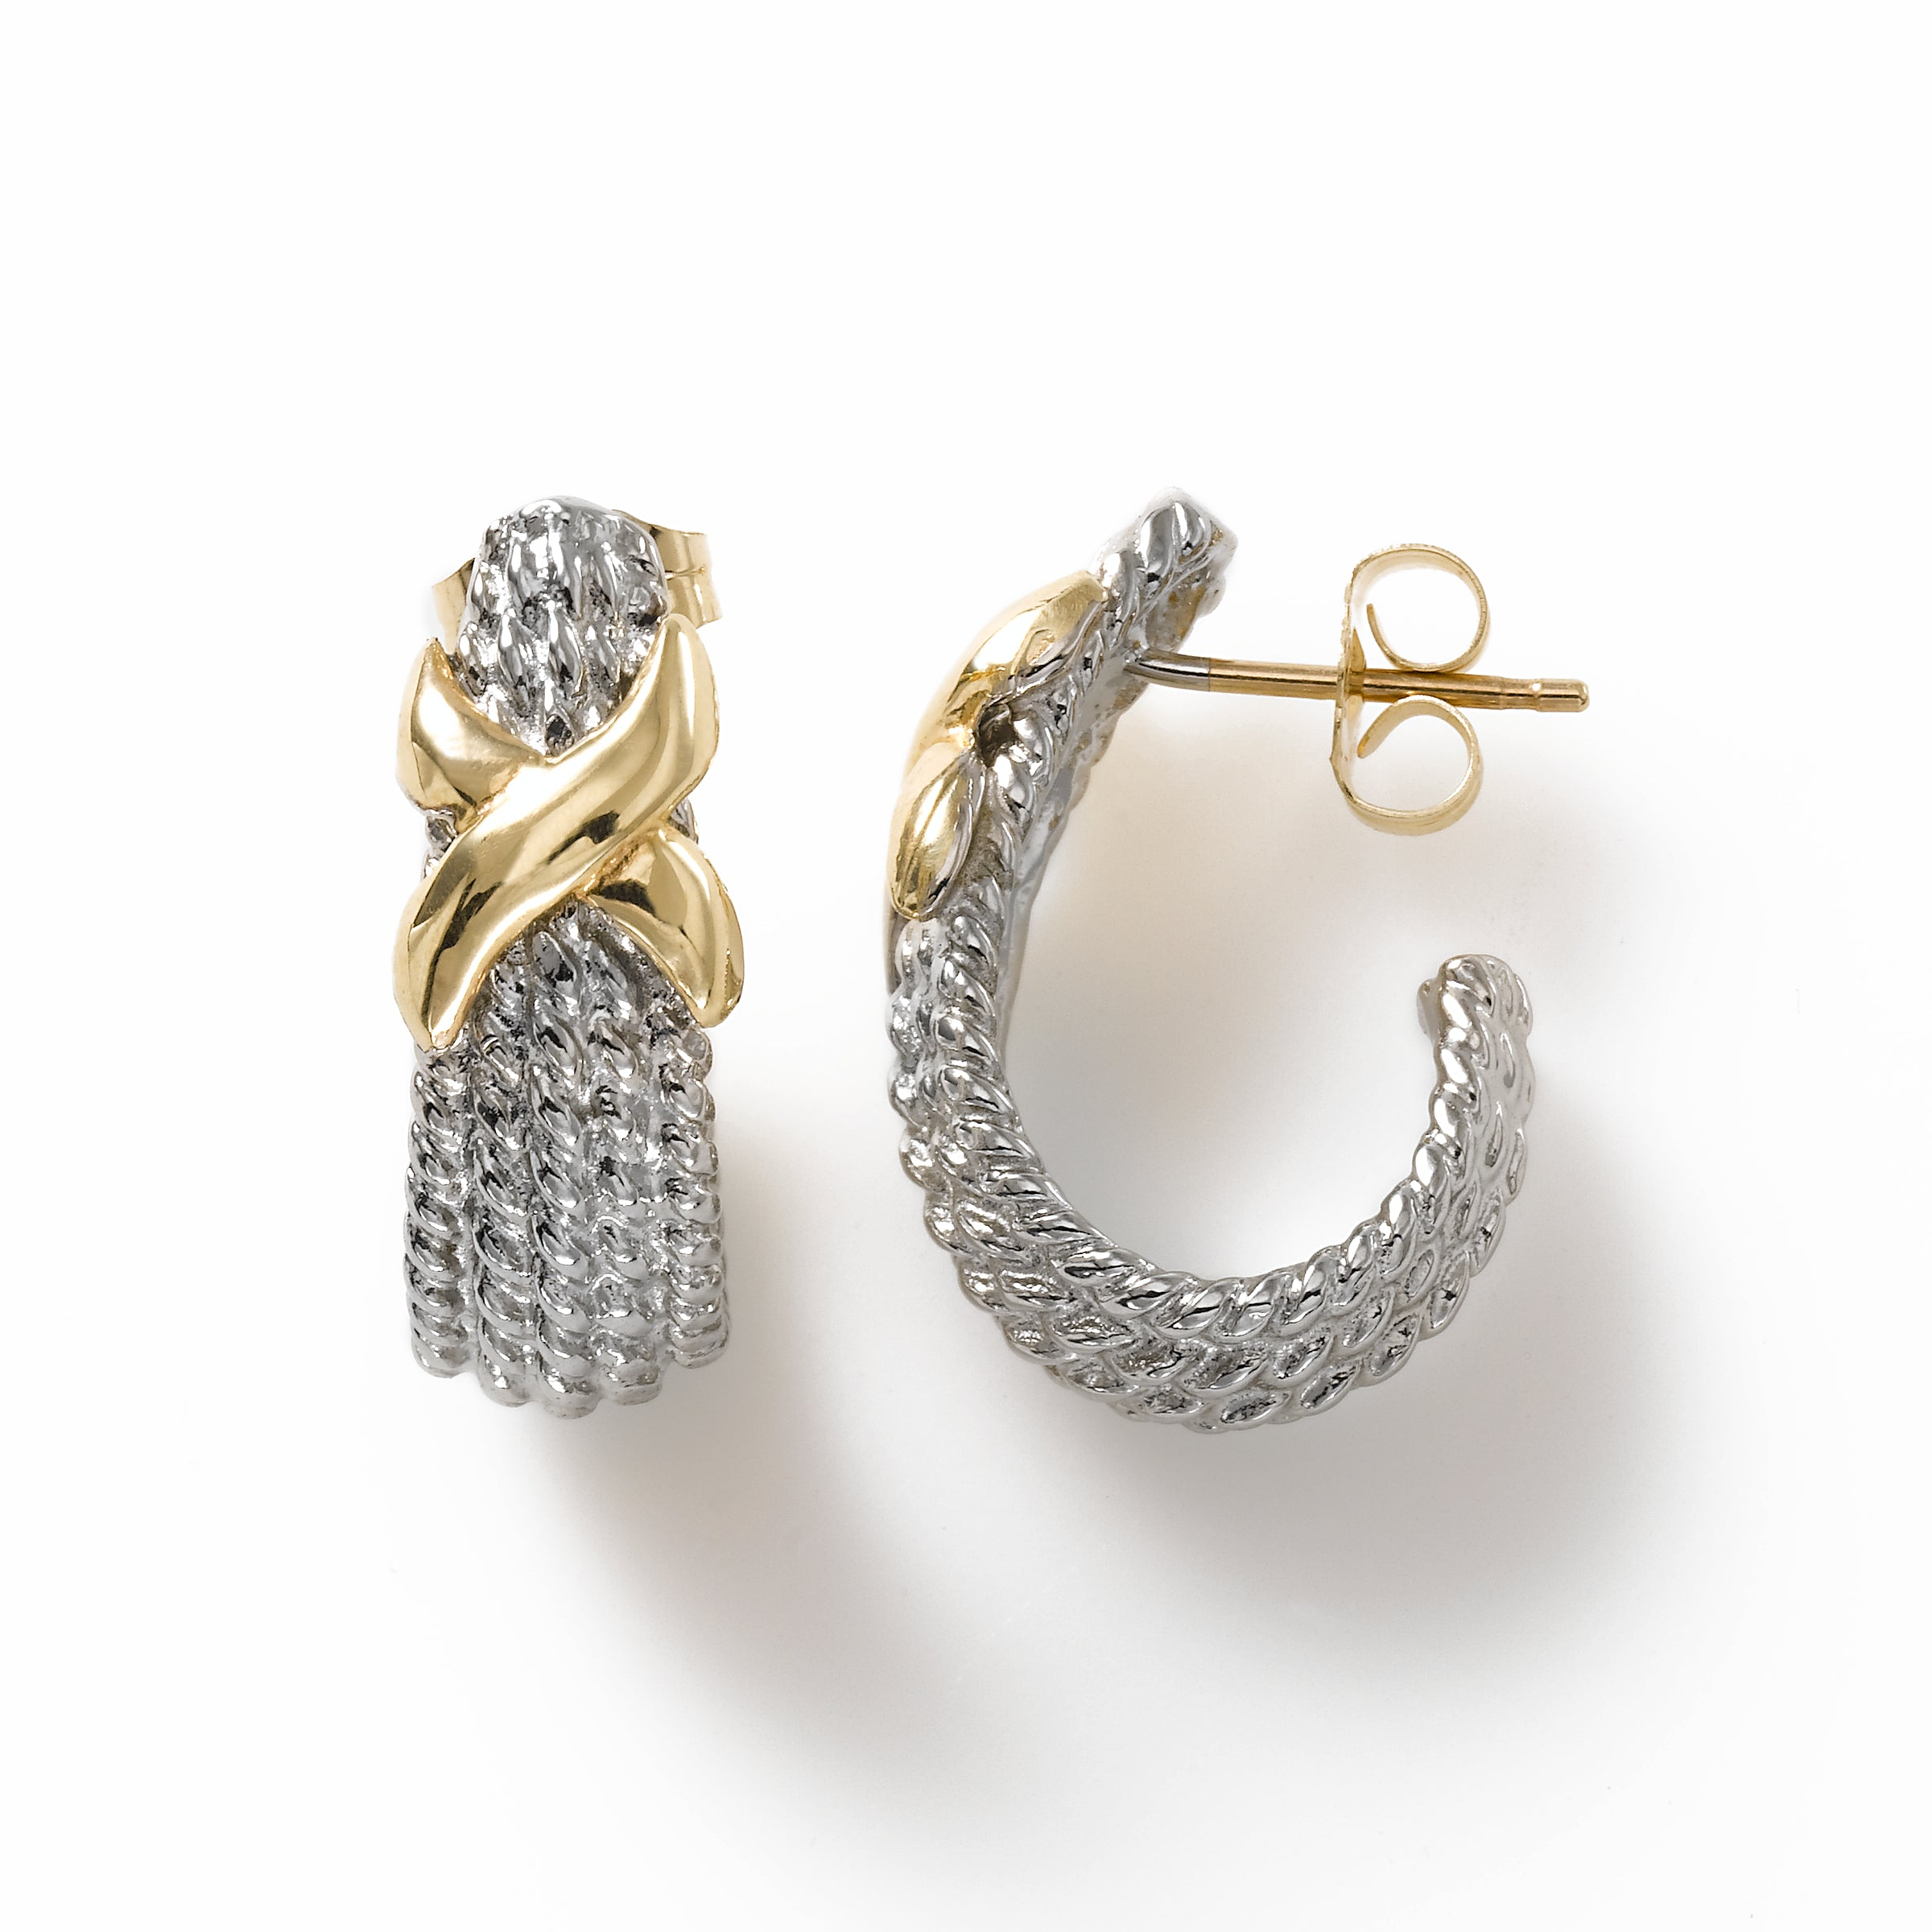 Rope Texture 'J' Hoop, Sterling Silver, and 14K Yellow Gold